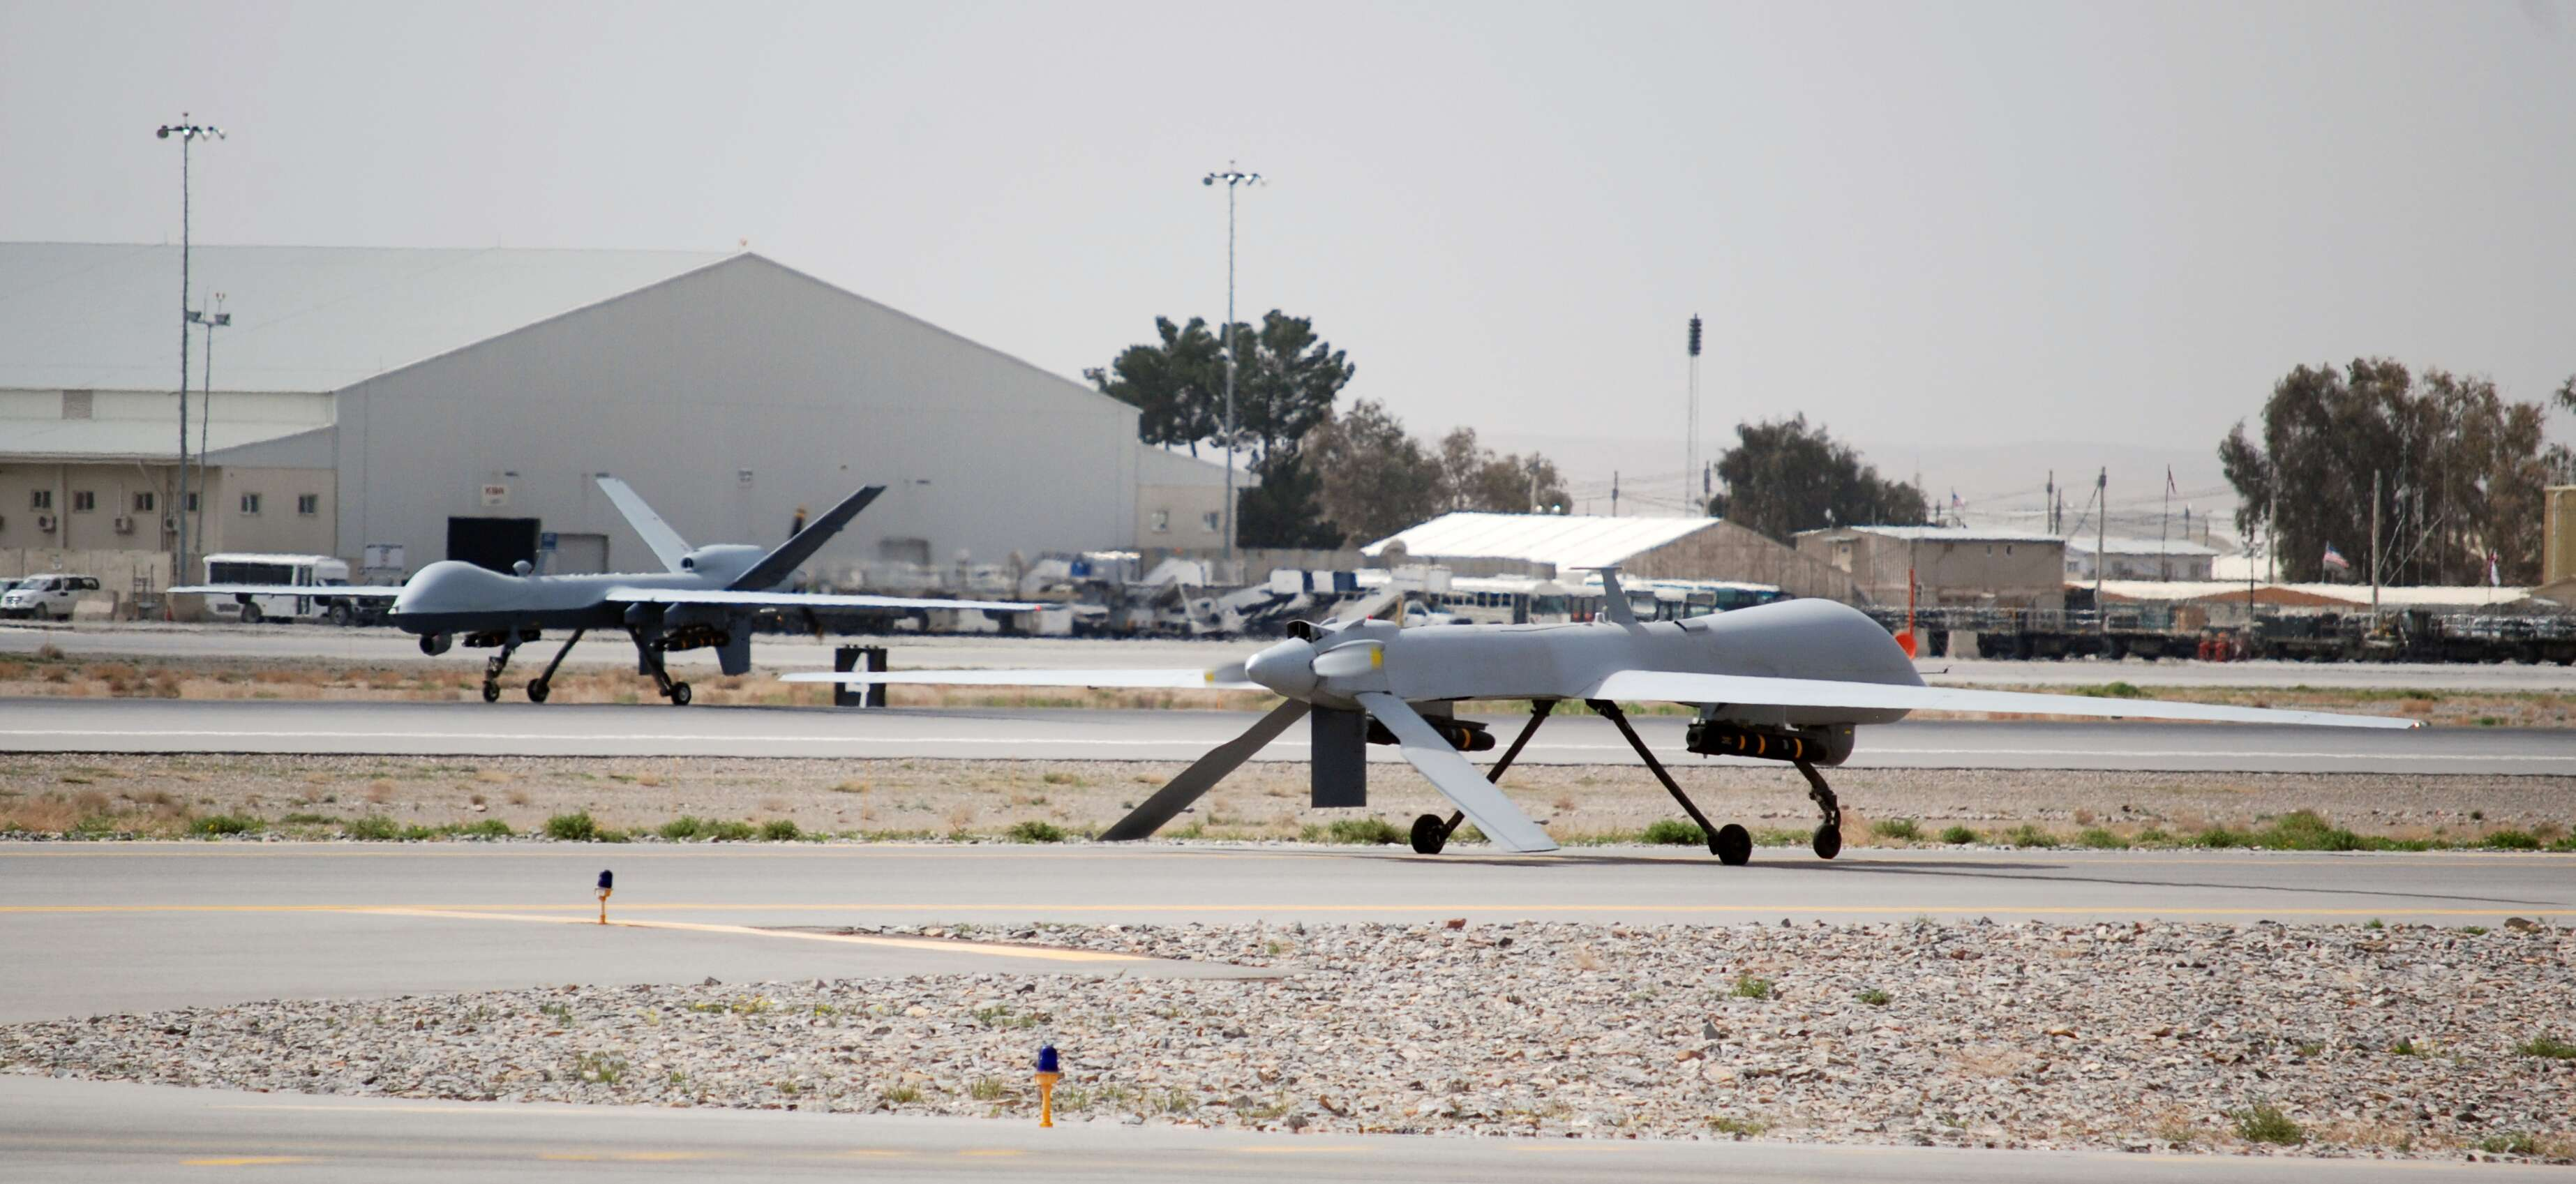 USAF Officially Retires MQ 1 Predator While 9 Reaper Set To Gain